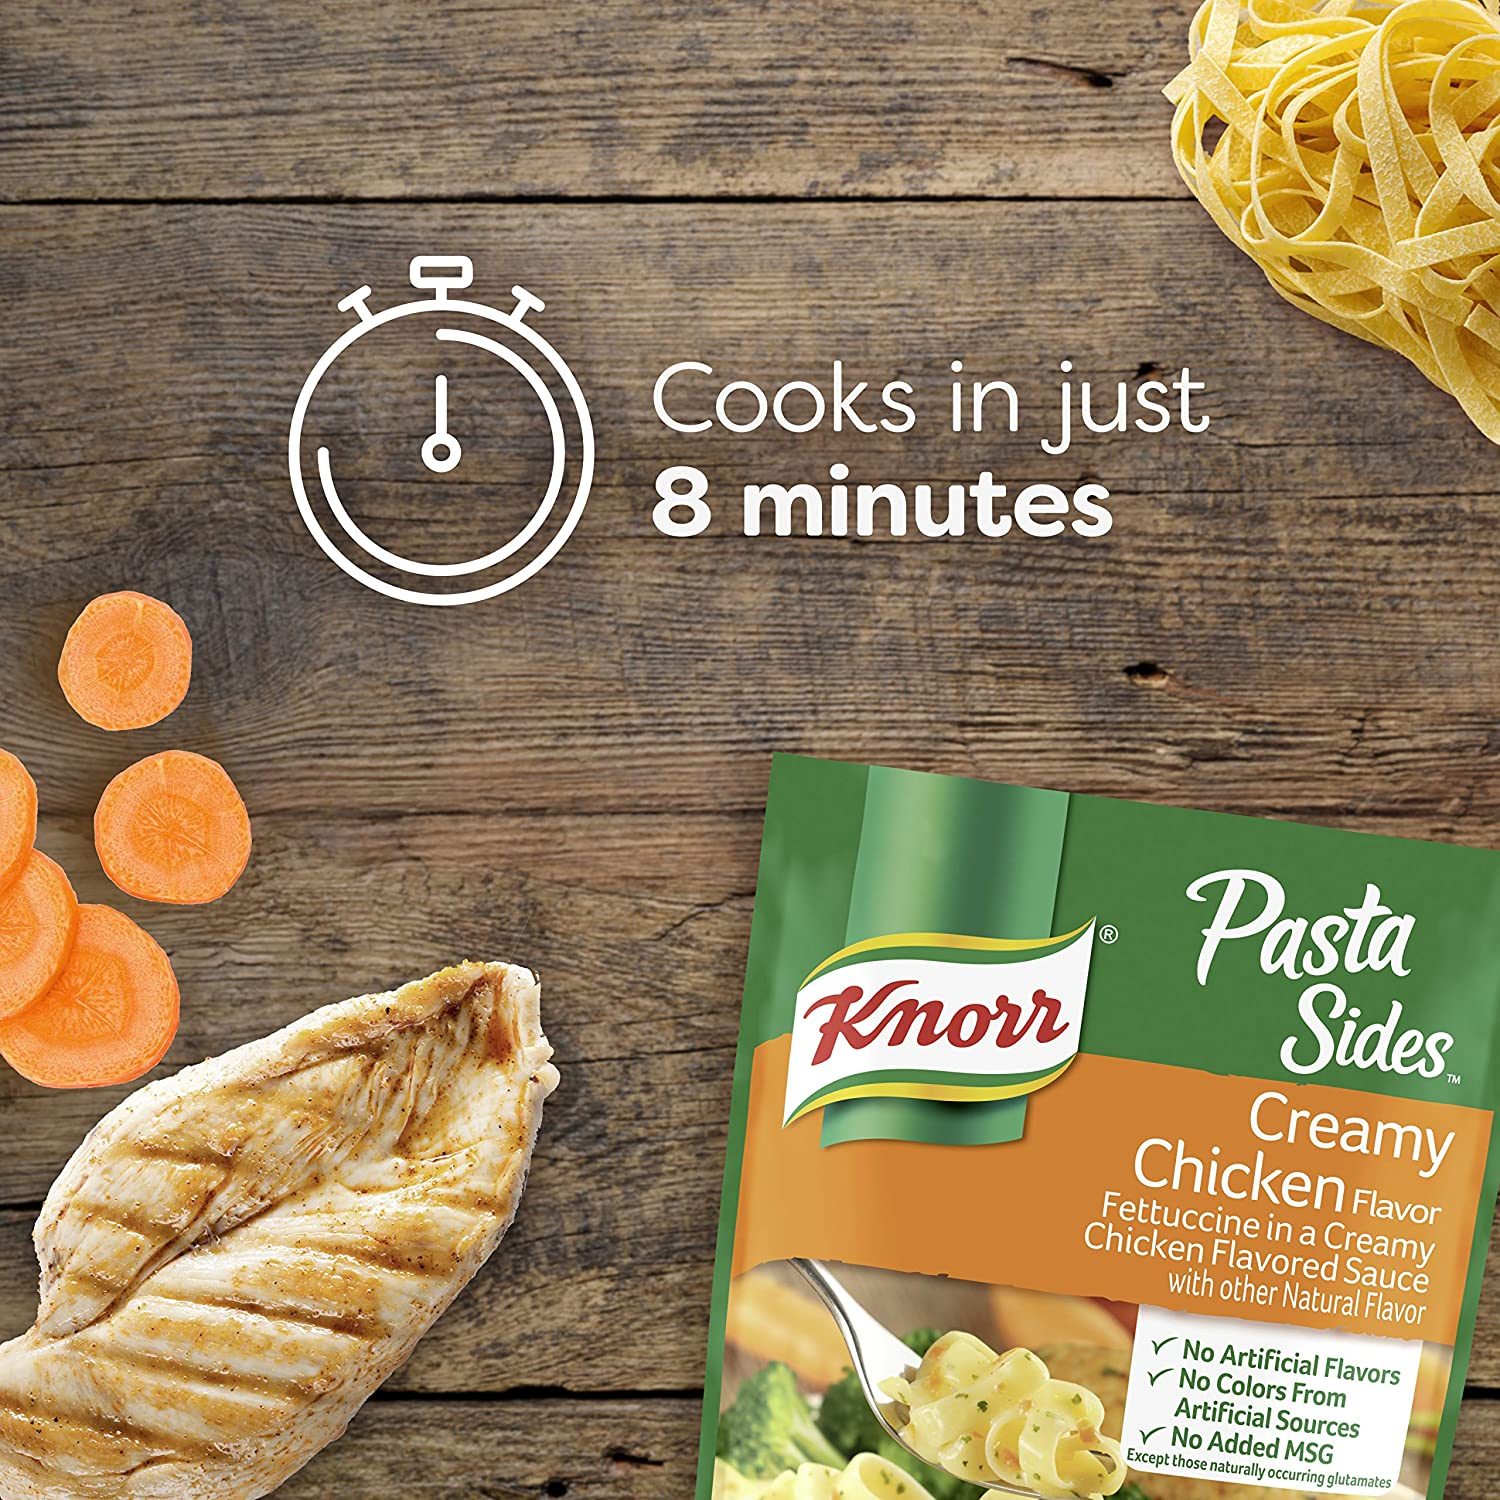 Knorr Pasta Sides For A Delicious Easy Pasta Meal Pack Of 8 Only 7 60 Freebies2deals